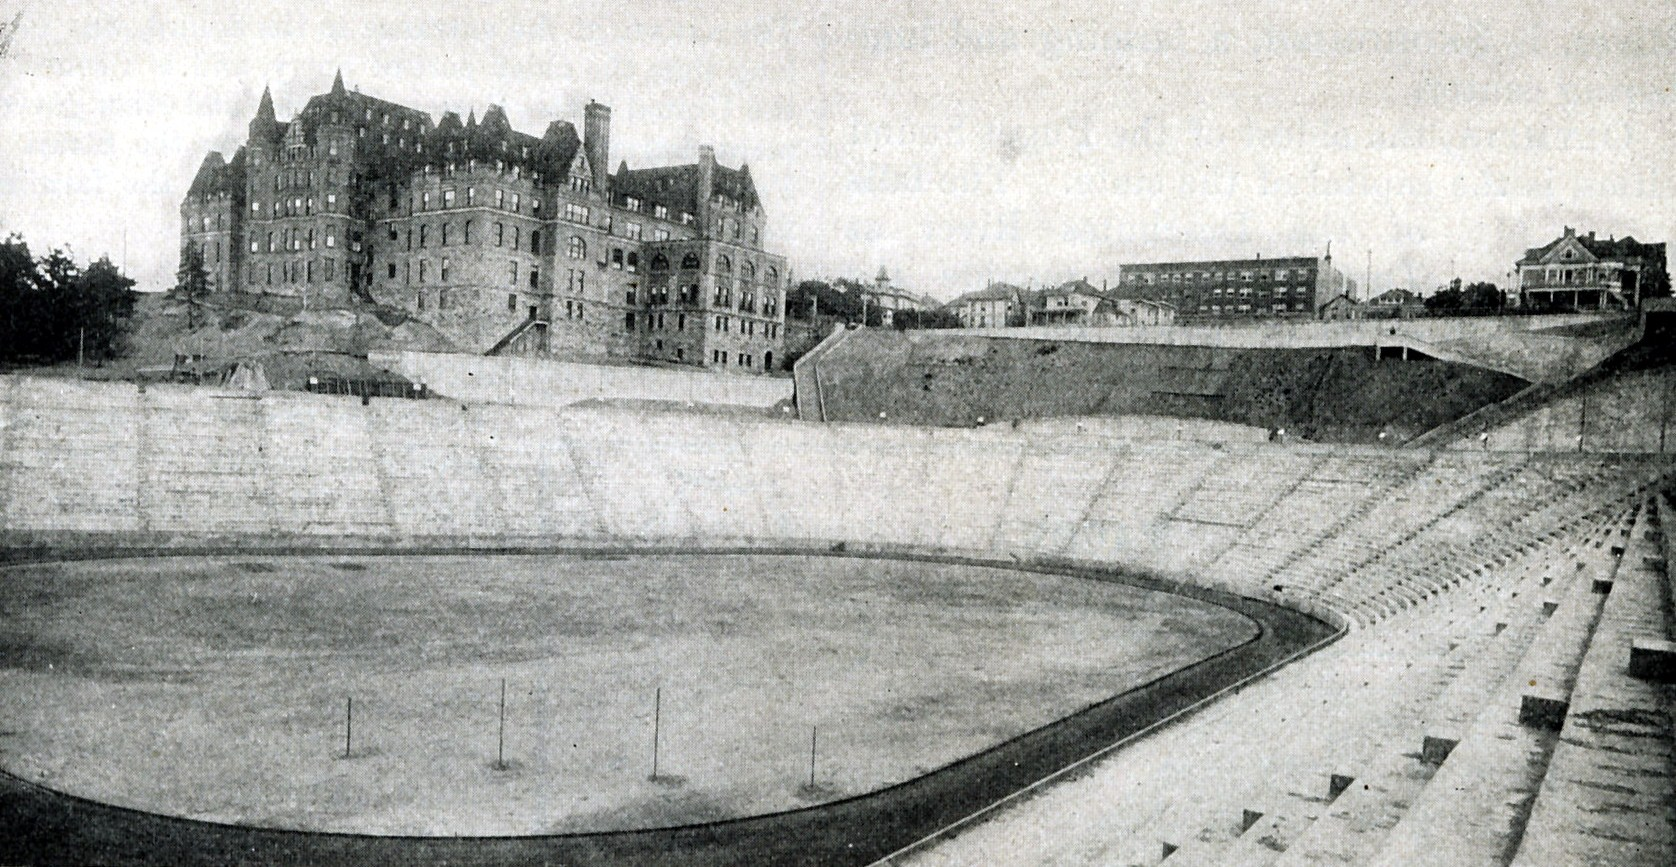 File:Stadium High School, Tacoma 1910s.jpg - Wikimedia Commons